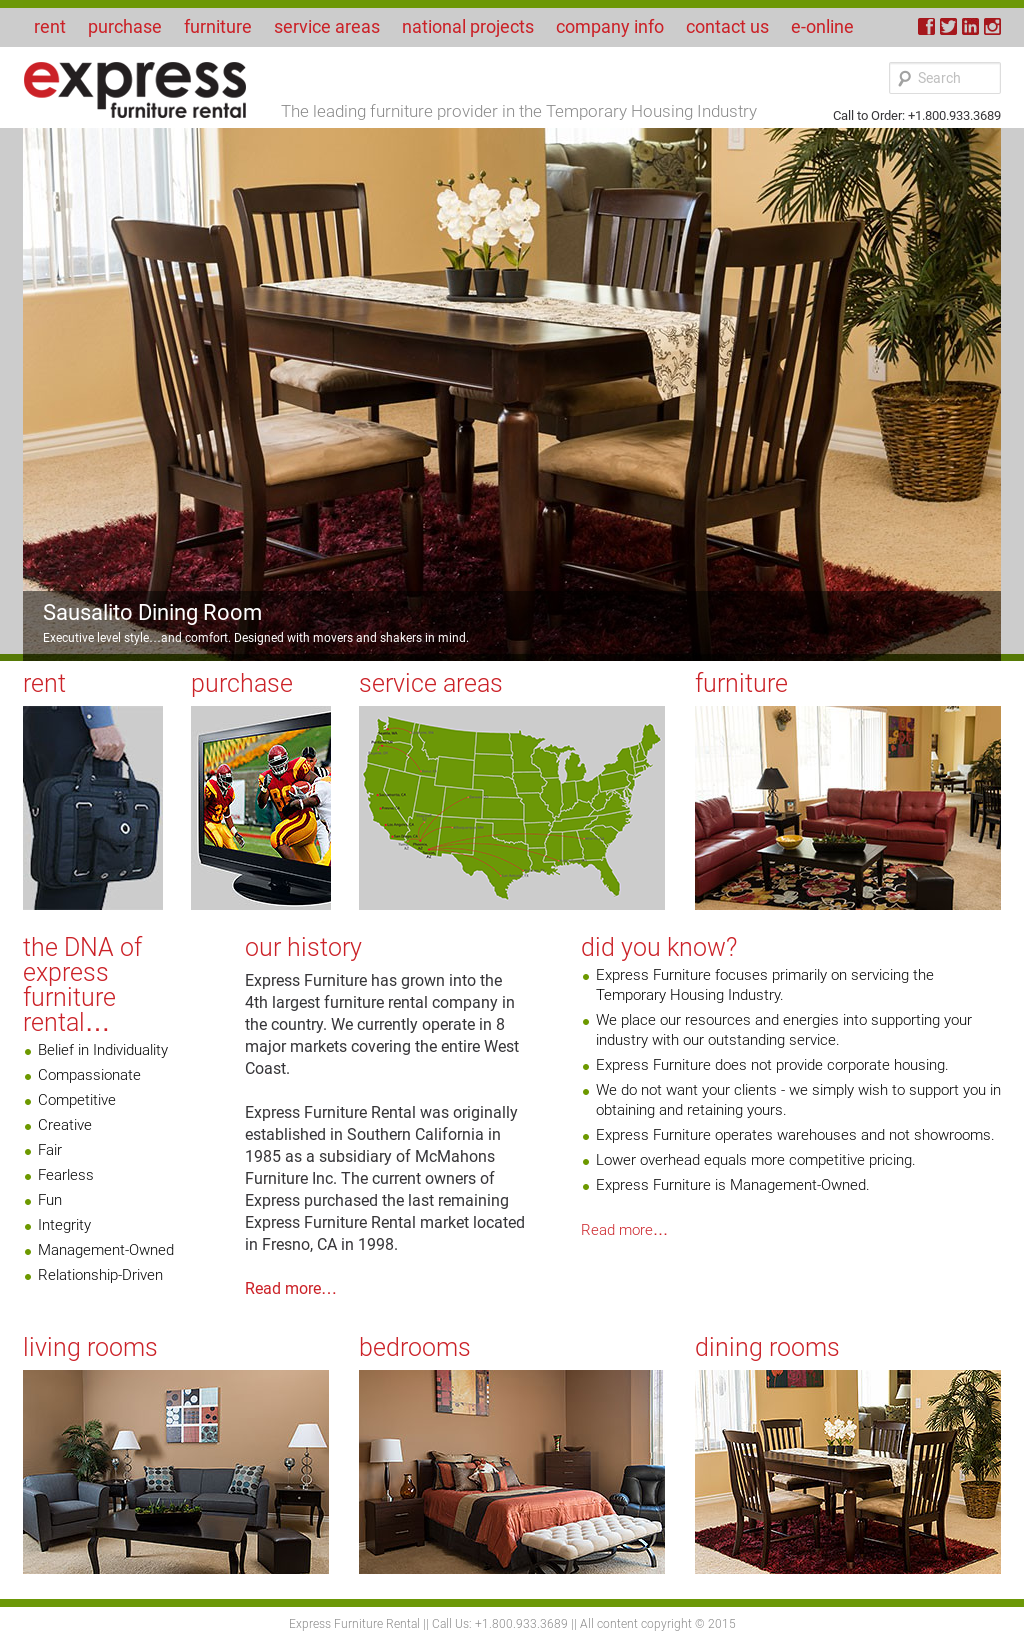 Express Furniture Rental Company Profile Revenue Number Of Employees Funding News And